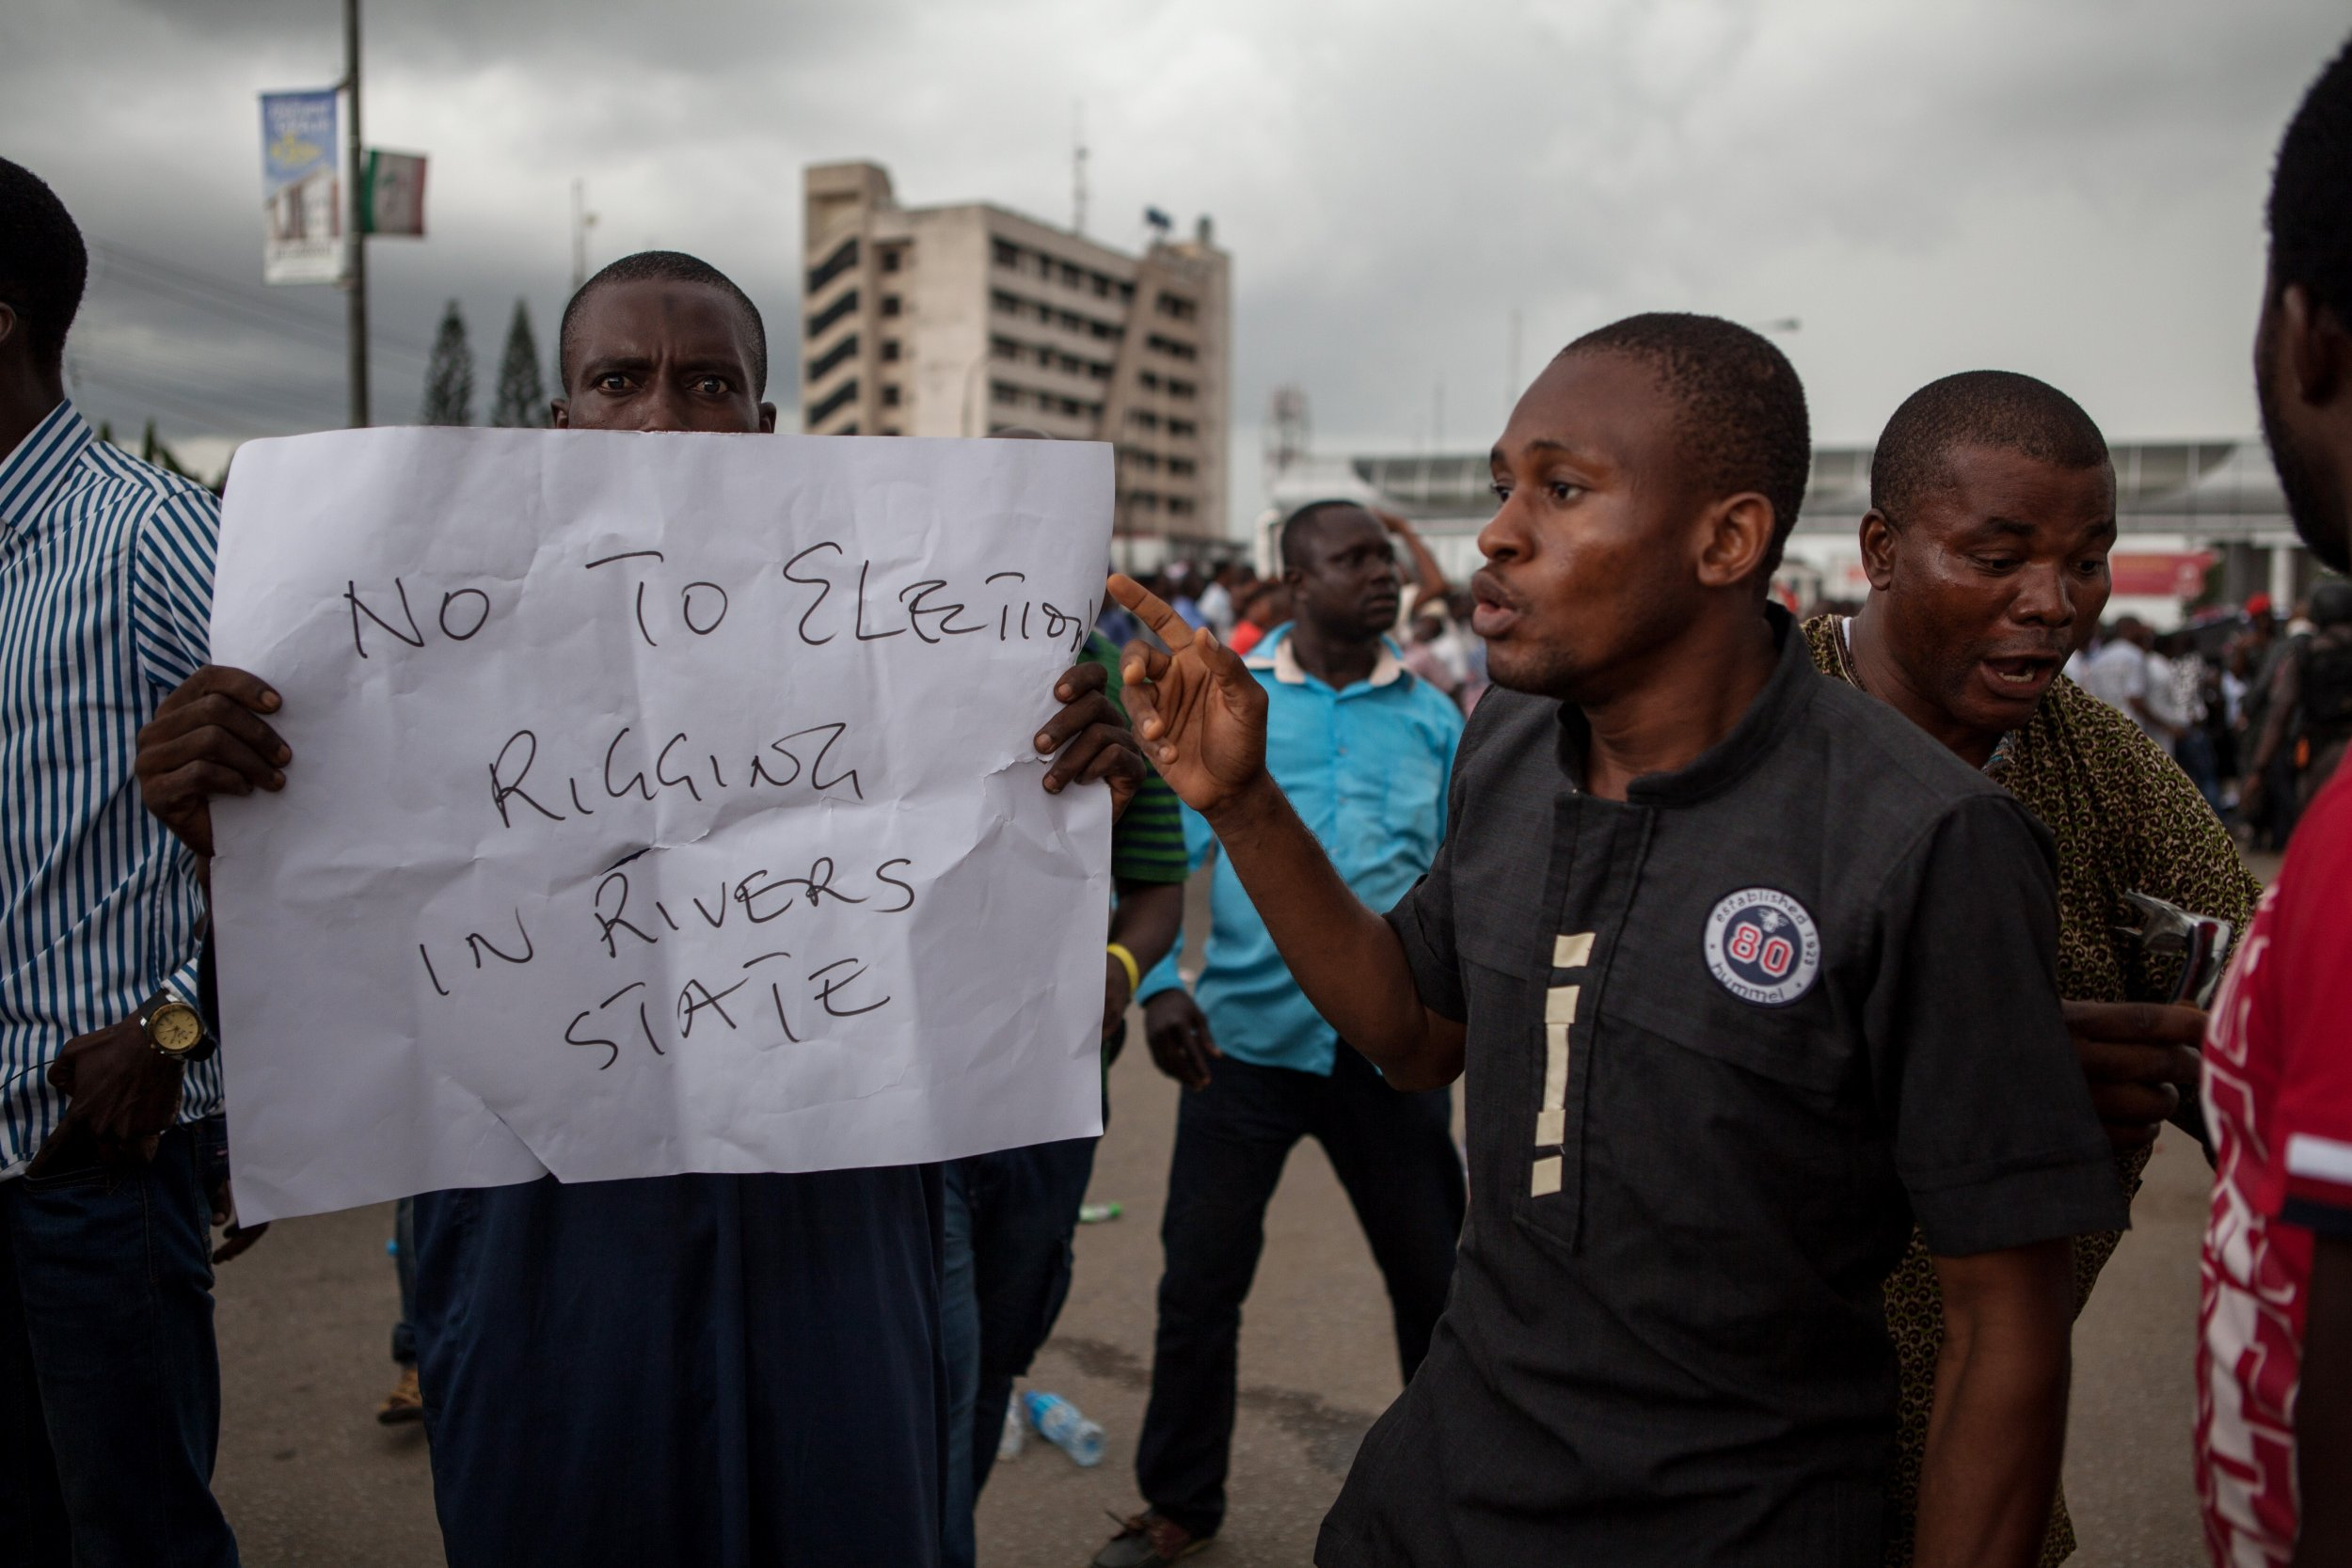 APC supporters demonstrate in Port Harcourt in Nigeria's Rivers state.